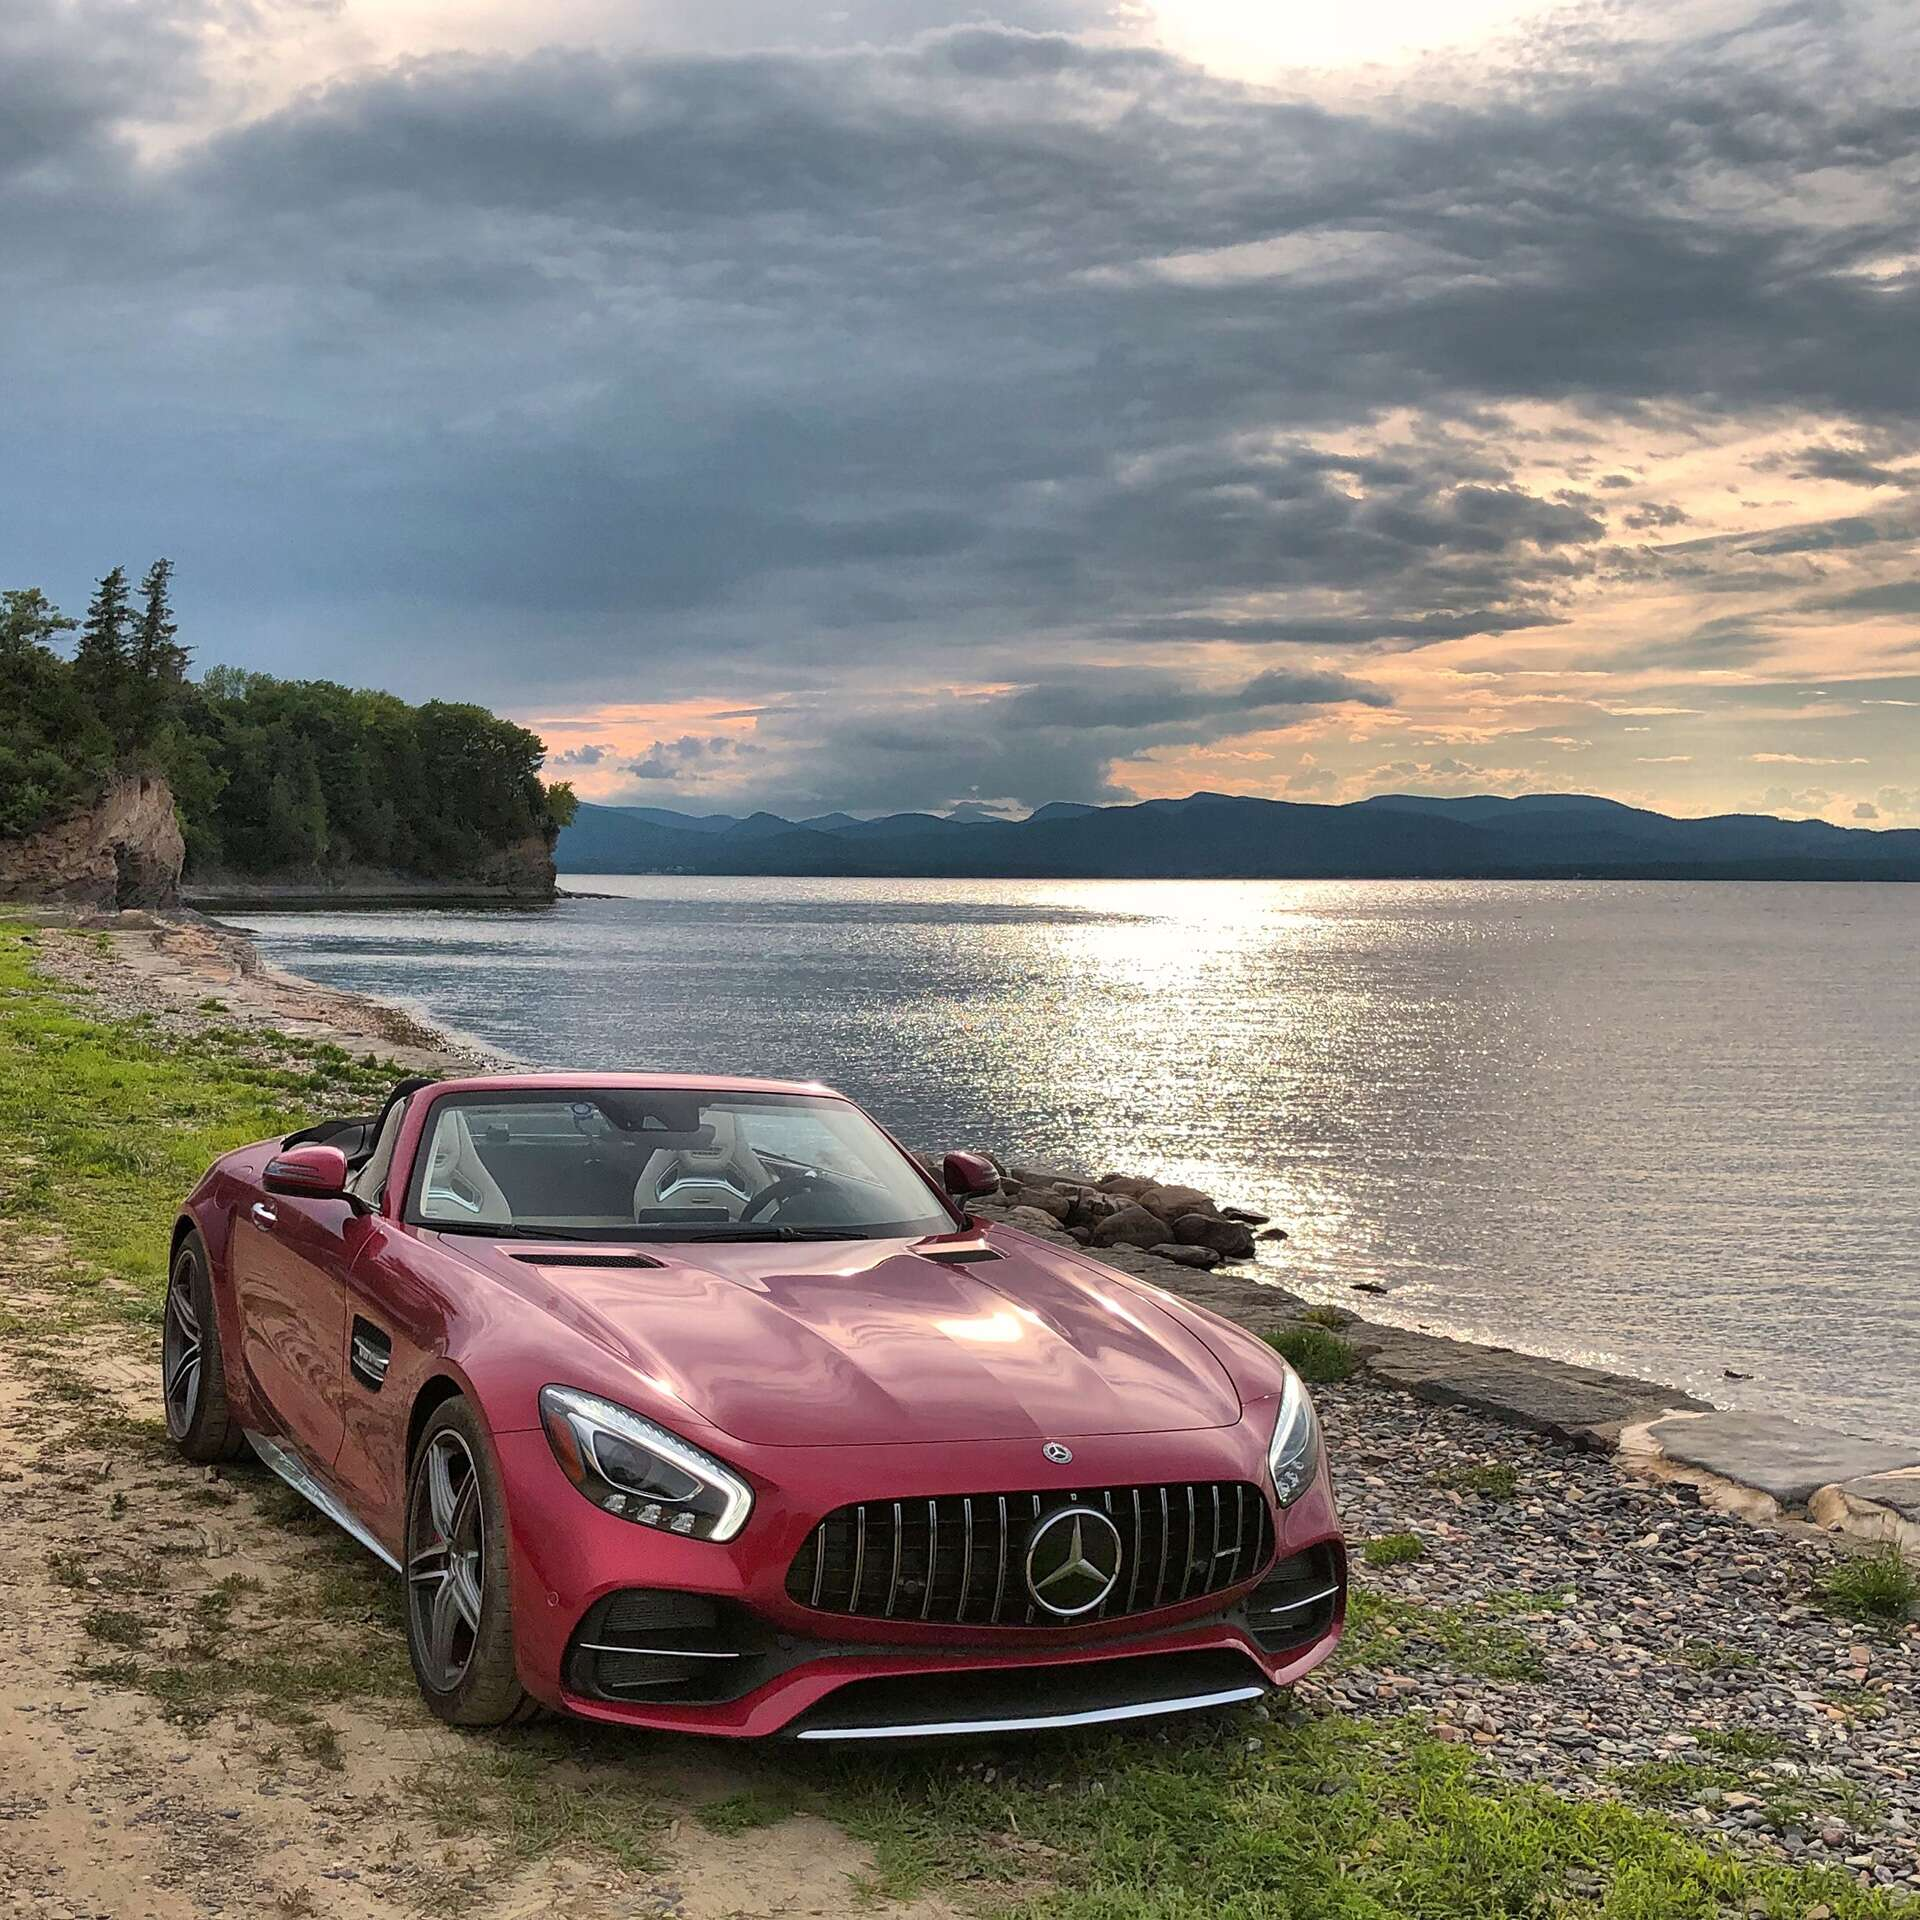 2018 Mercedes-AMG GT C Roadster Test Drive Review: Benz's